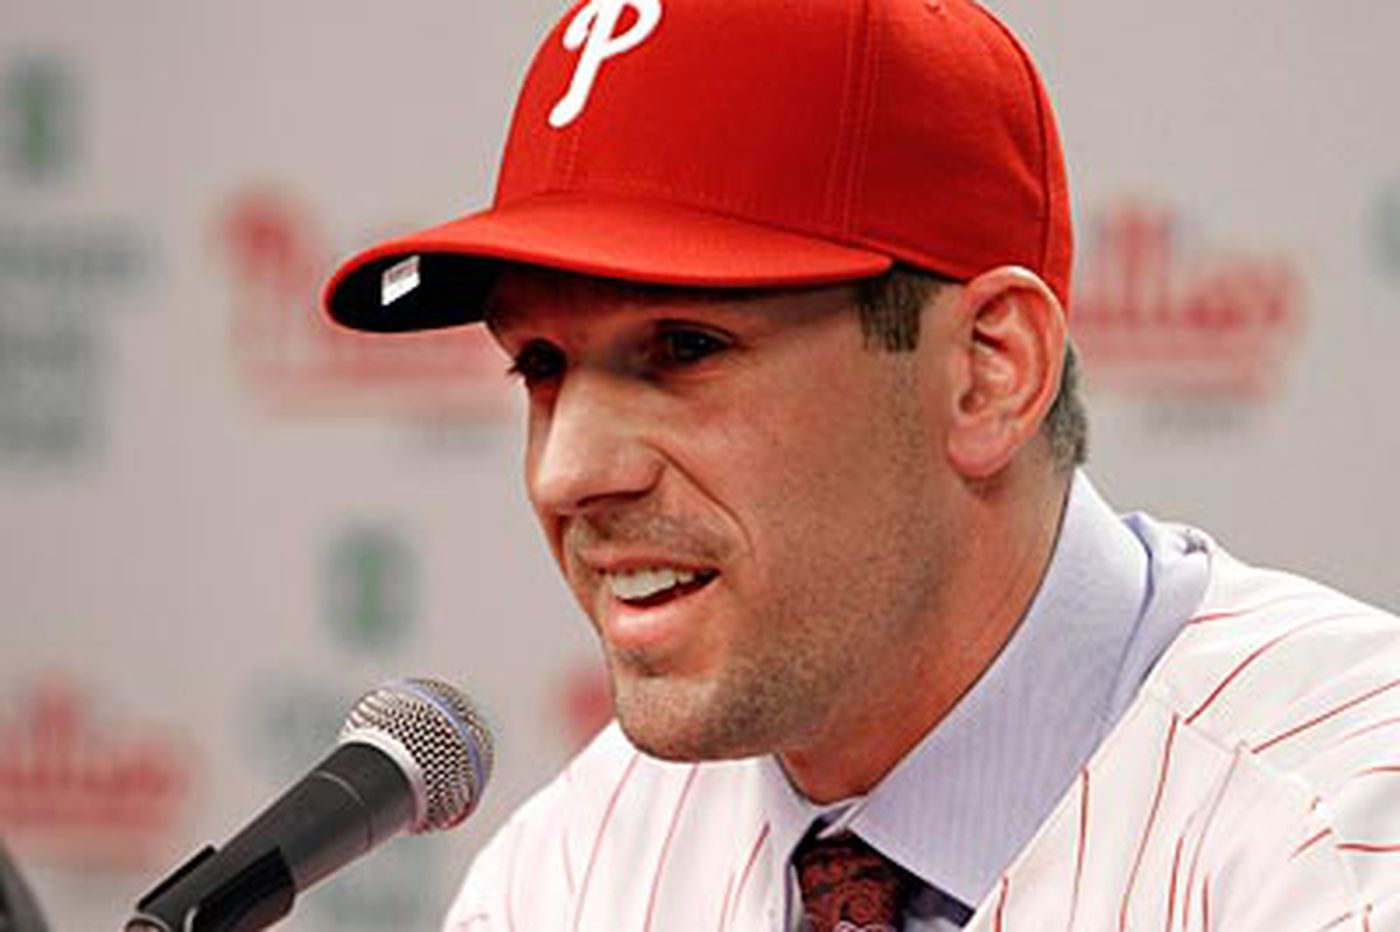 Cliff Lee might not be the world's best person